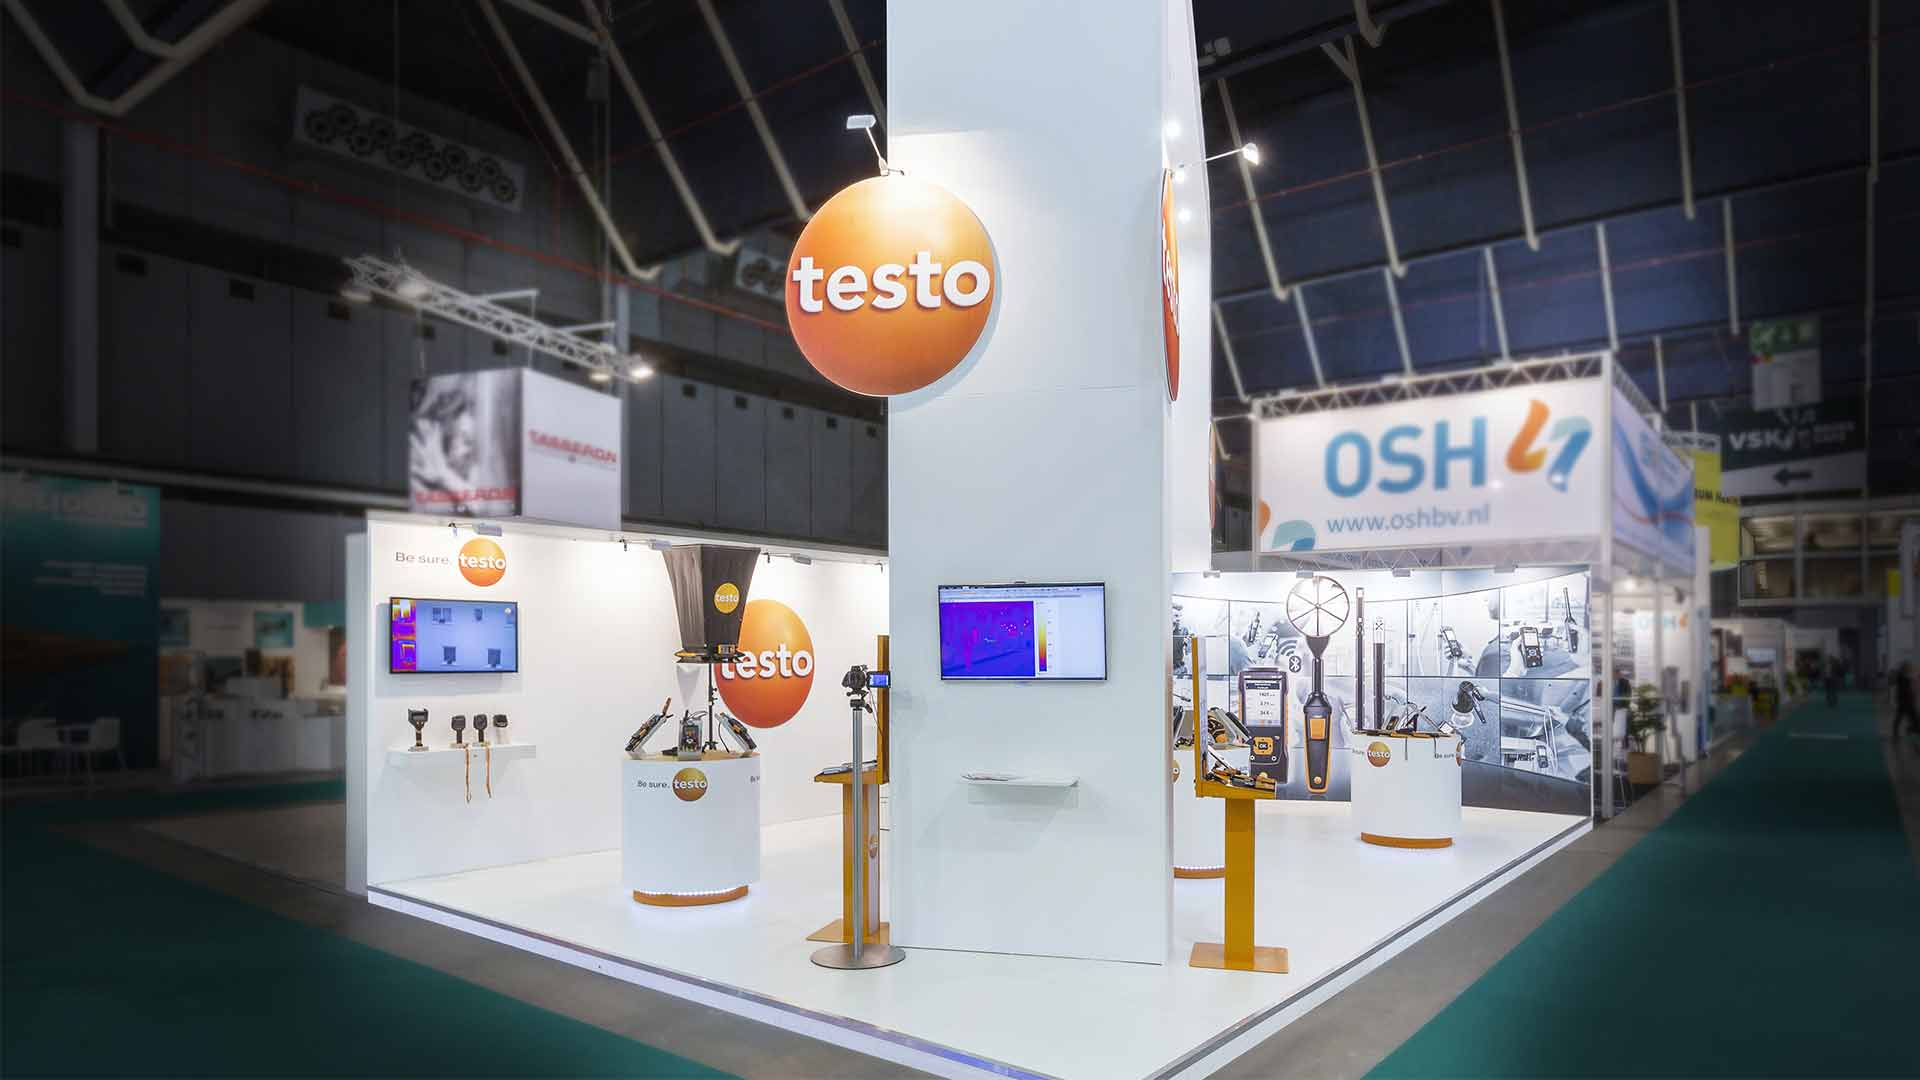 Exhibition Stand Installer Jobs : Expospaces provided the exhibition stand for testo at the vsk